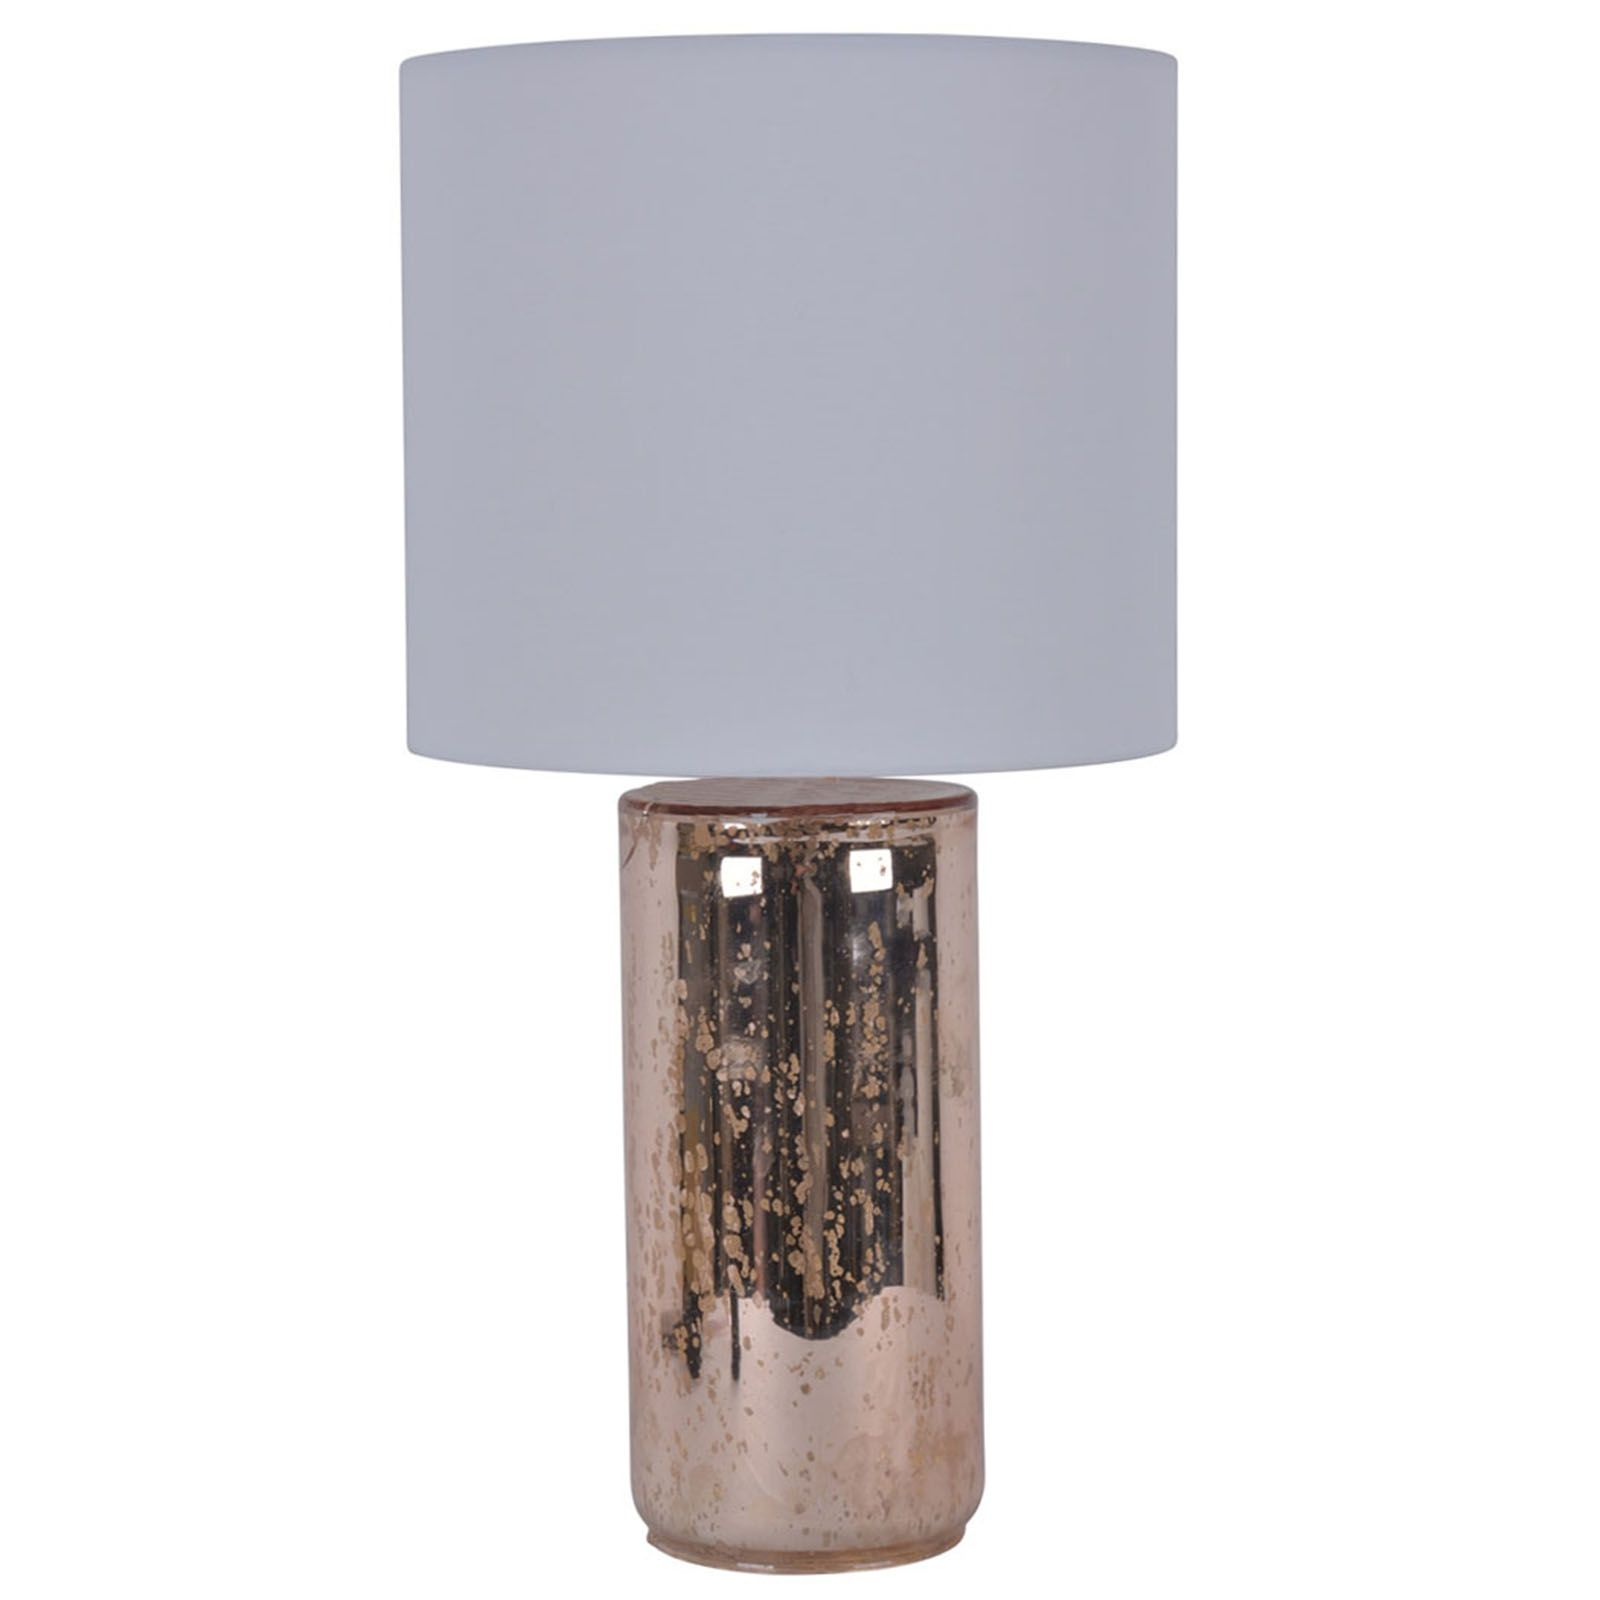 table digitalliteracyco lamp awesome with night best remodel white innovative nightstand glazed modern magnificent lamps furniture stand ideas mia prism bedroom outdoor